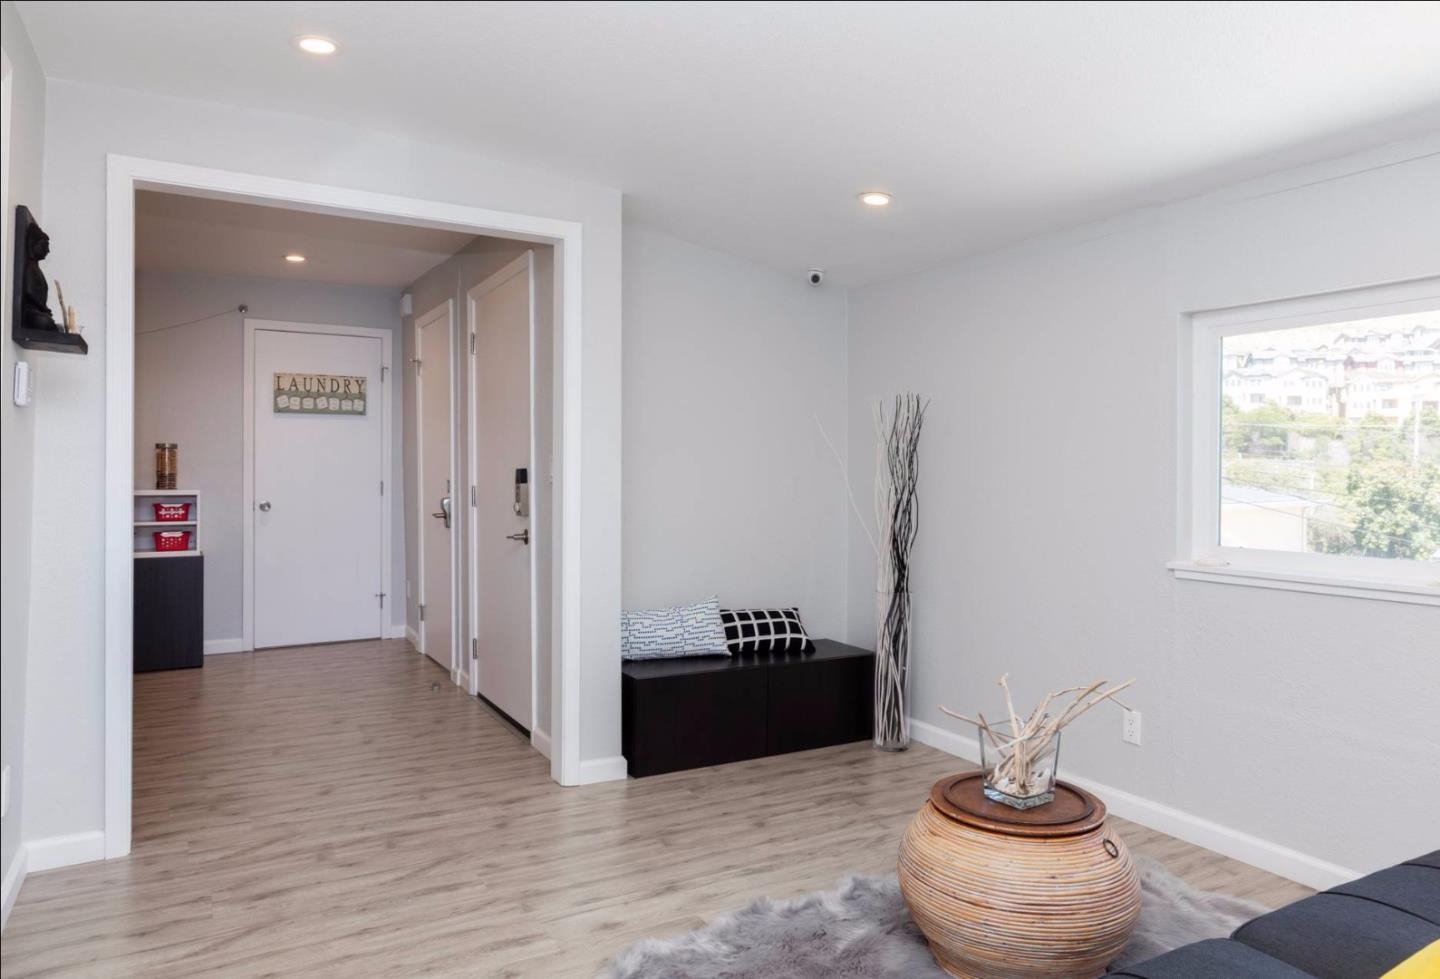 Additional photo for property listing at 301 Chapman Avenue  South San Francisco, California 94080 United States